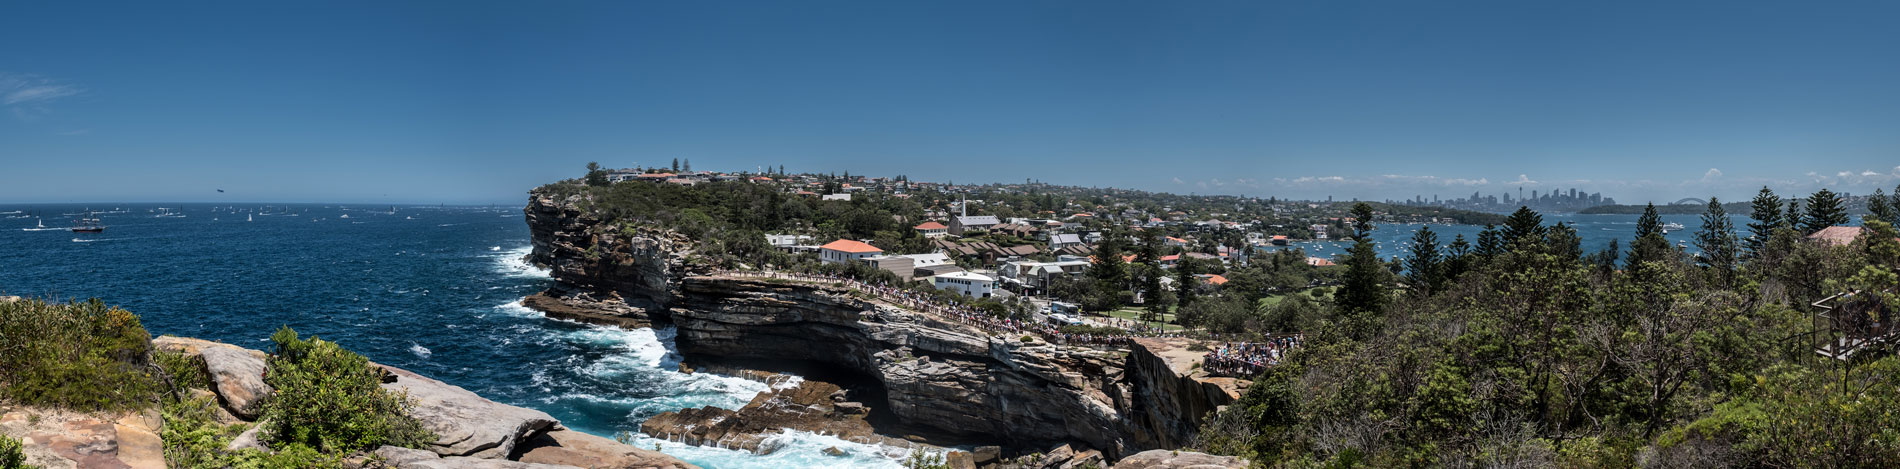 Sydney to Hobart - panoramic view from The Gap - Watsons Bay - boxing day 2018